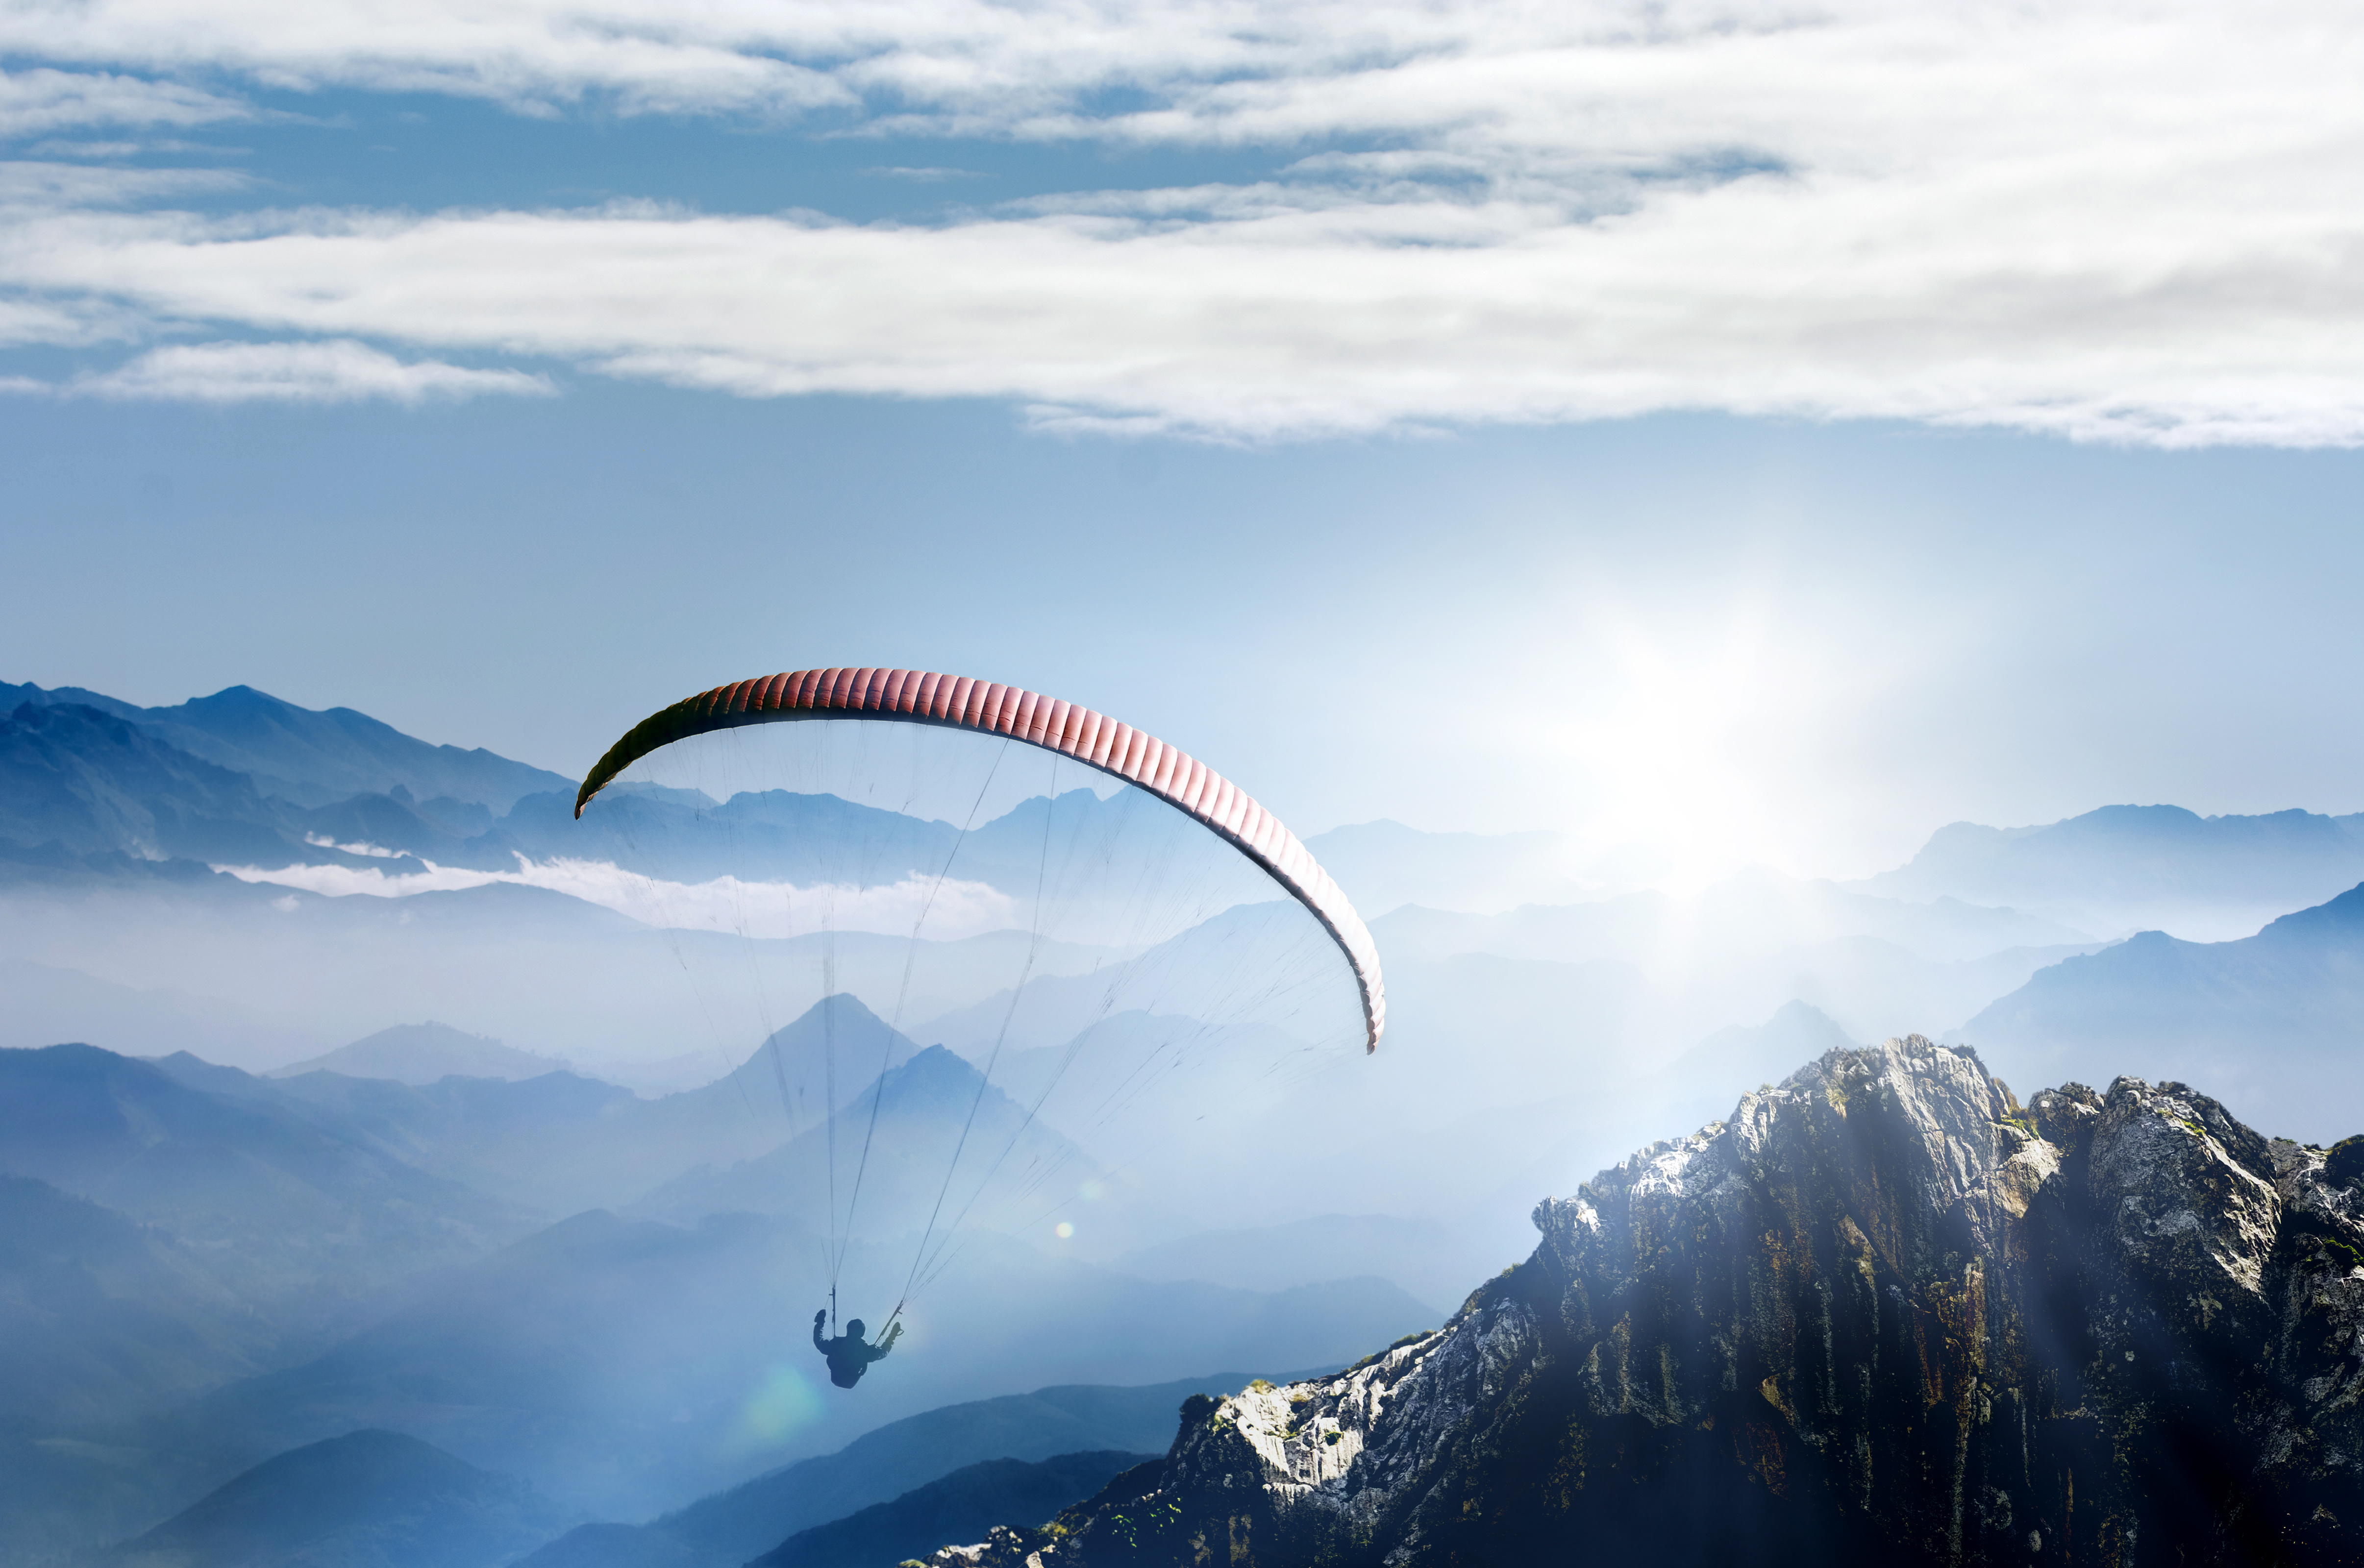 Paragliding in Bad Gastein